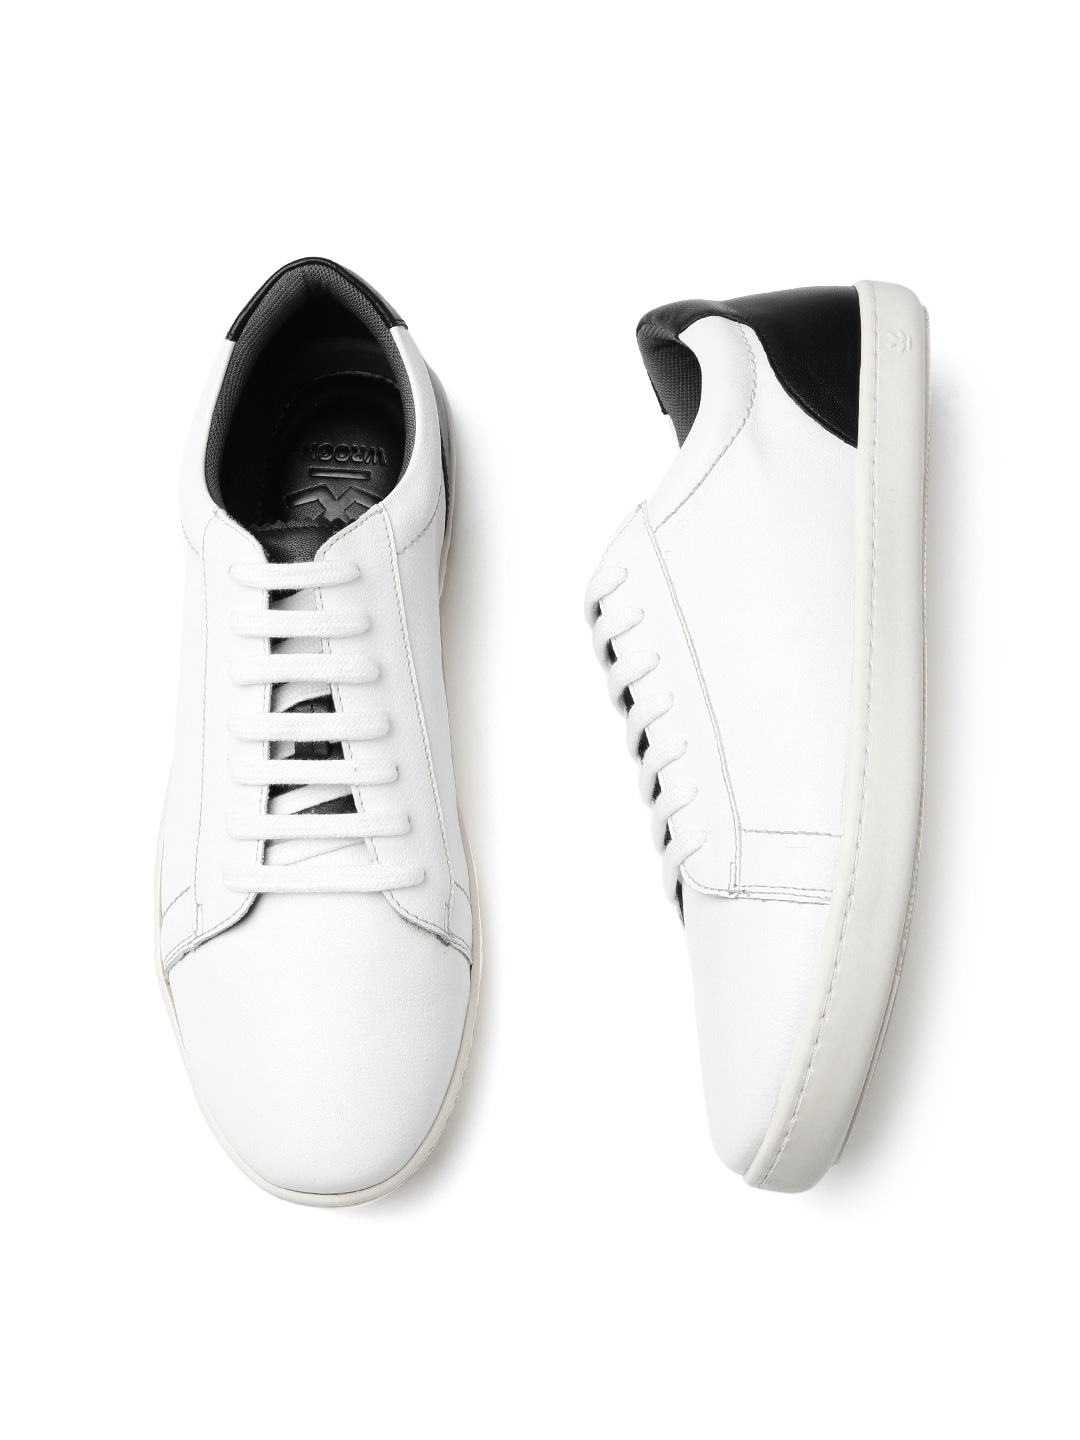 de5228a0c57f Men White Casual Shoes - Buy Men White Casual Shoes online in India